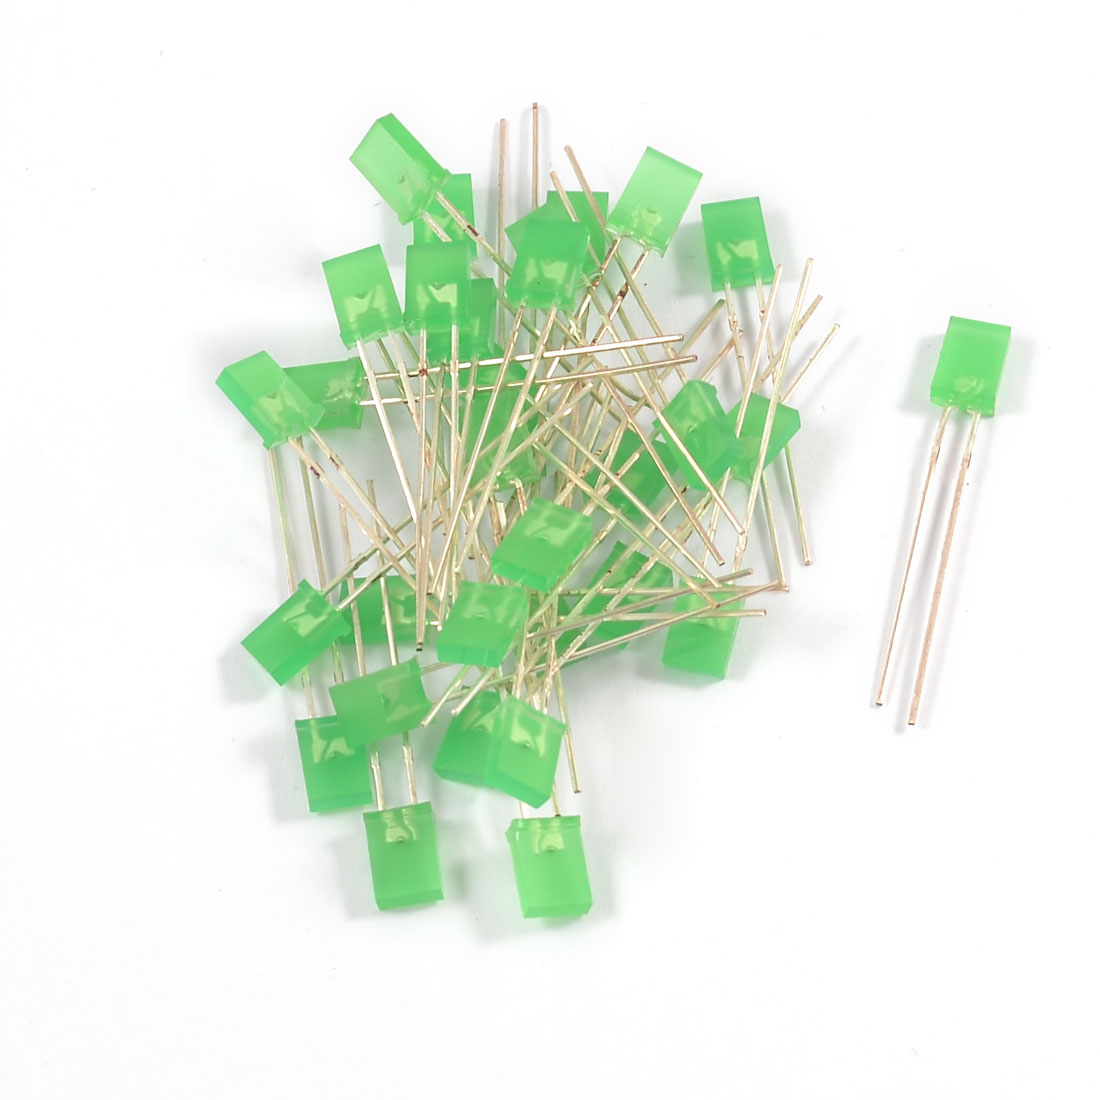 30 Pieces 2 Terminals Superbright Green LED Light Diodes